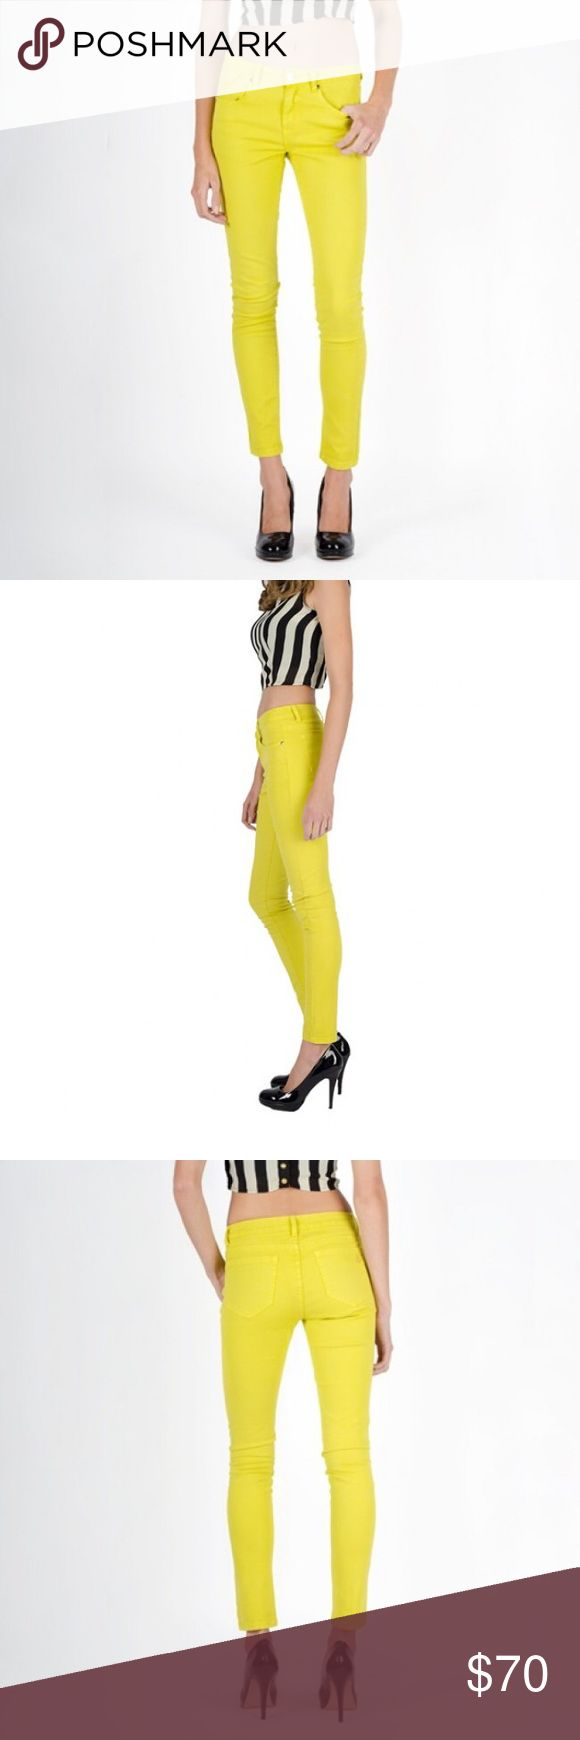 Yellow jeans Add a bit of color to your wardrobe with Chaconia dolls' zesty lemon premium skinny jeans! Pair these with our striped cropped top or navy blue blazer for a clean and sophisticated look!  Click 'Shop the Look' for many ways to wear our Neon Jeans!  * 98% Cotton *2% Spandex  * Low rise Premium denim  * Logo on the back pocket  * Jeans are true to size, please measure your waist before selecting size.  * Brand: Chaconia Dolls  *Thank you for looking Chaconia Dolls Jeans Skinny